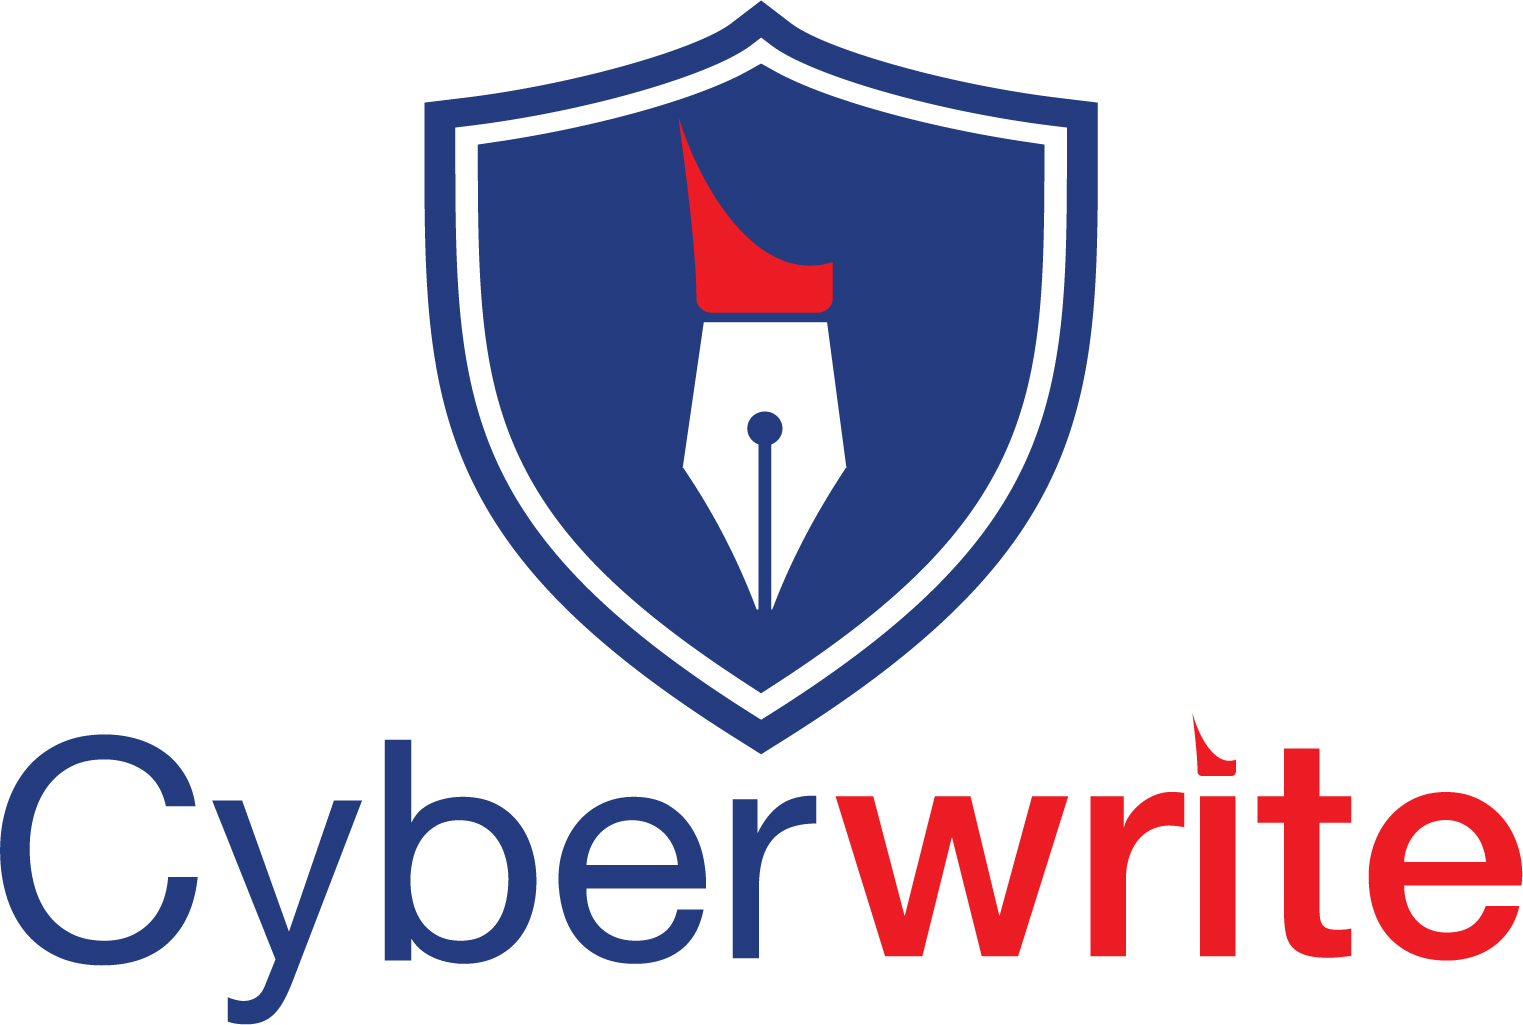 Cyberwrite Research for Mastercard Shows: Cyber-Attacks on Israeli Local Municipalities May Lead to an Aggregated 4.5B ILS in Damages